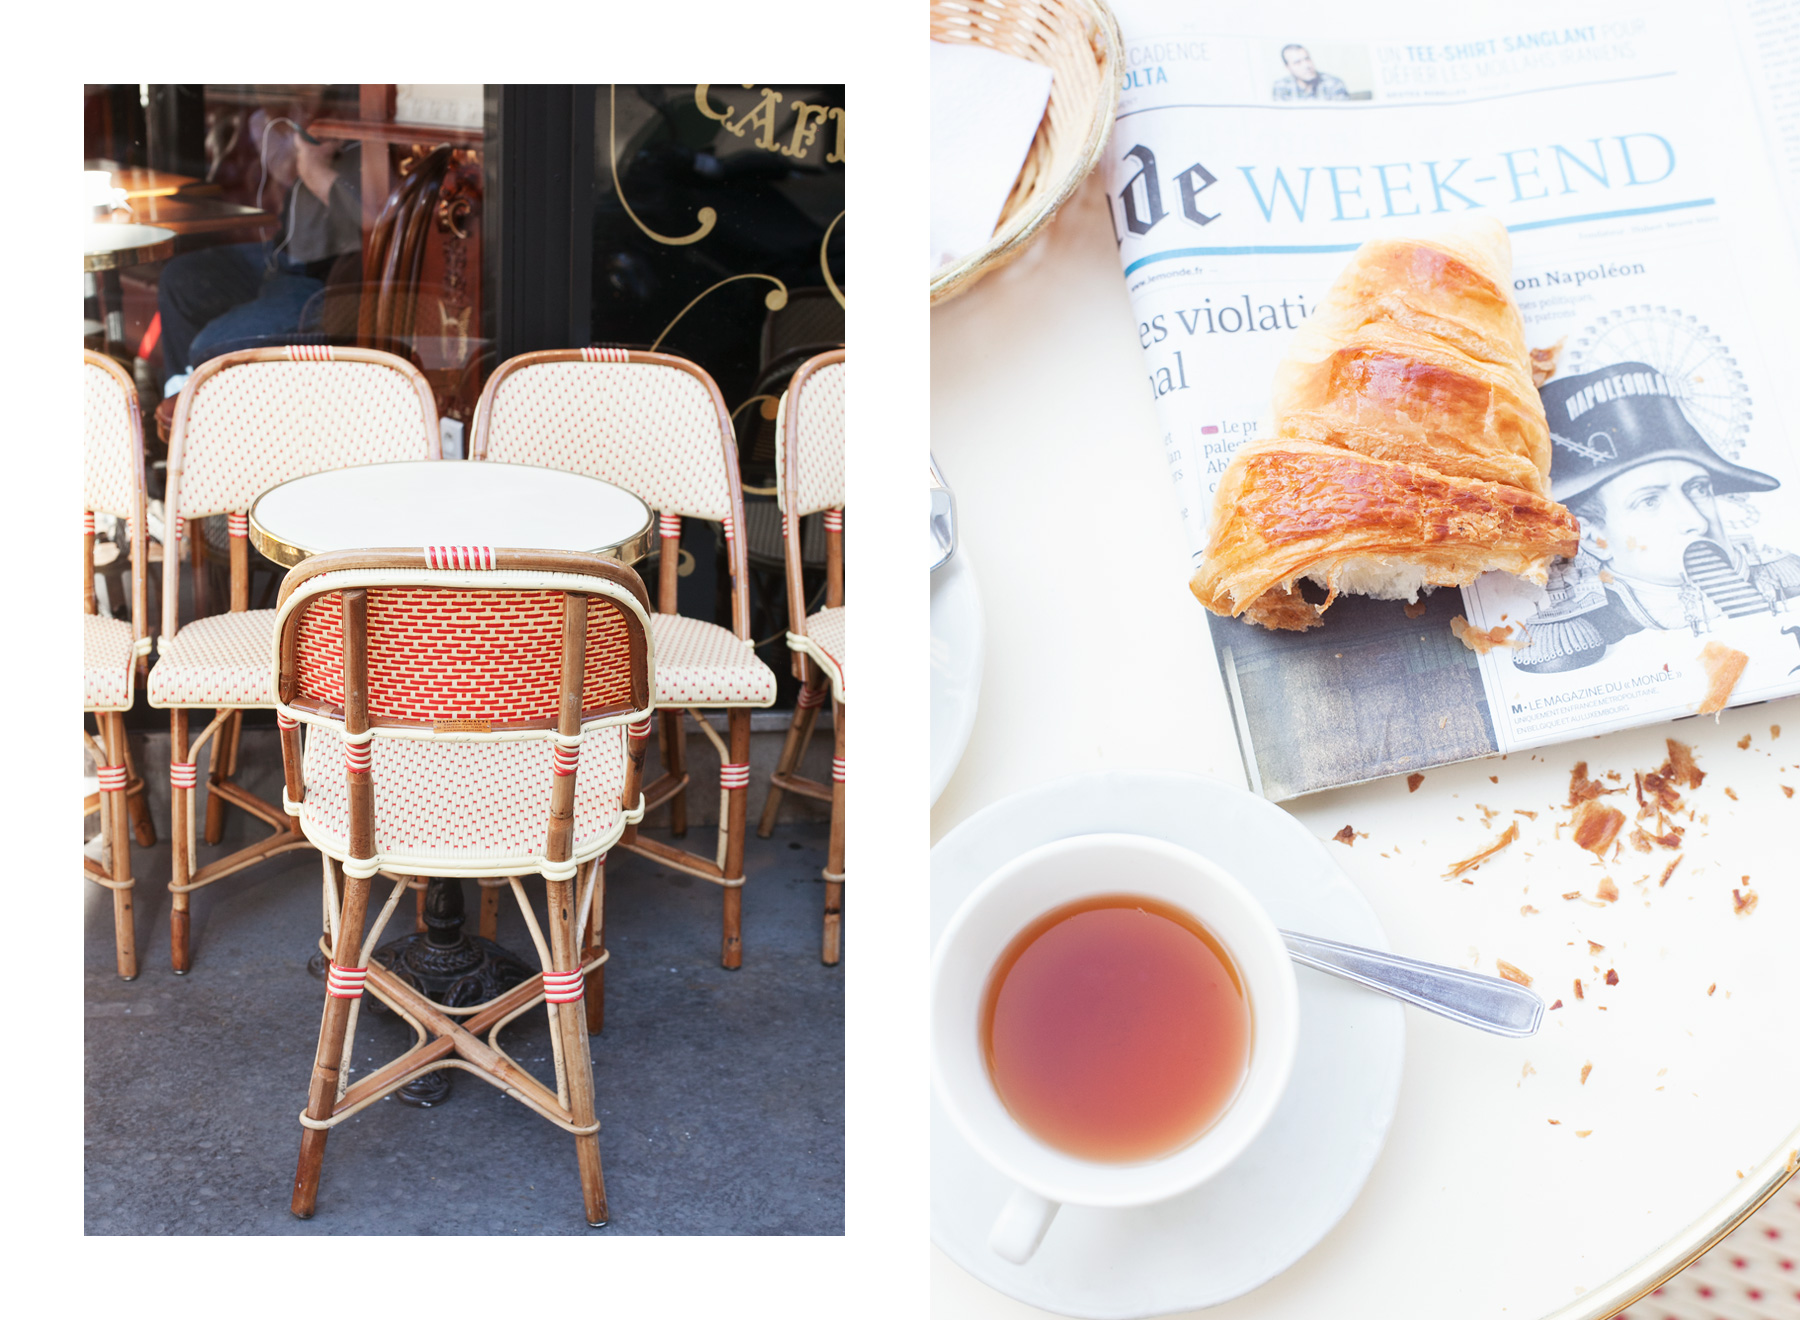 Parisian café by Carin Olsson (Paris in Four Months)